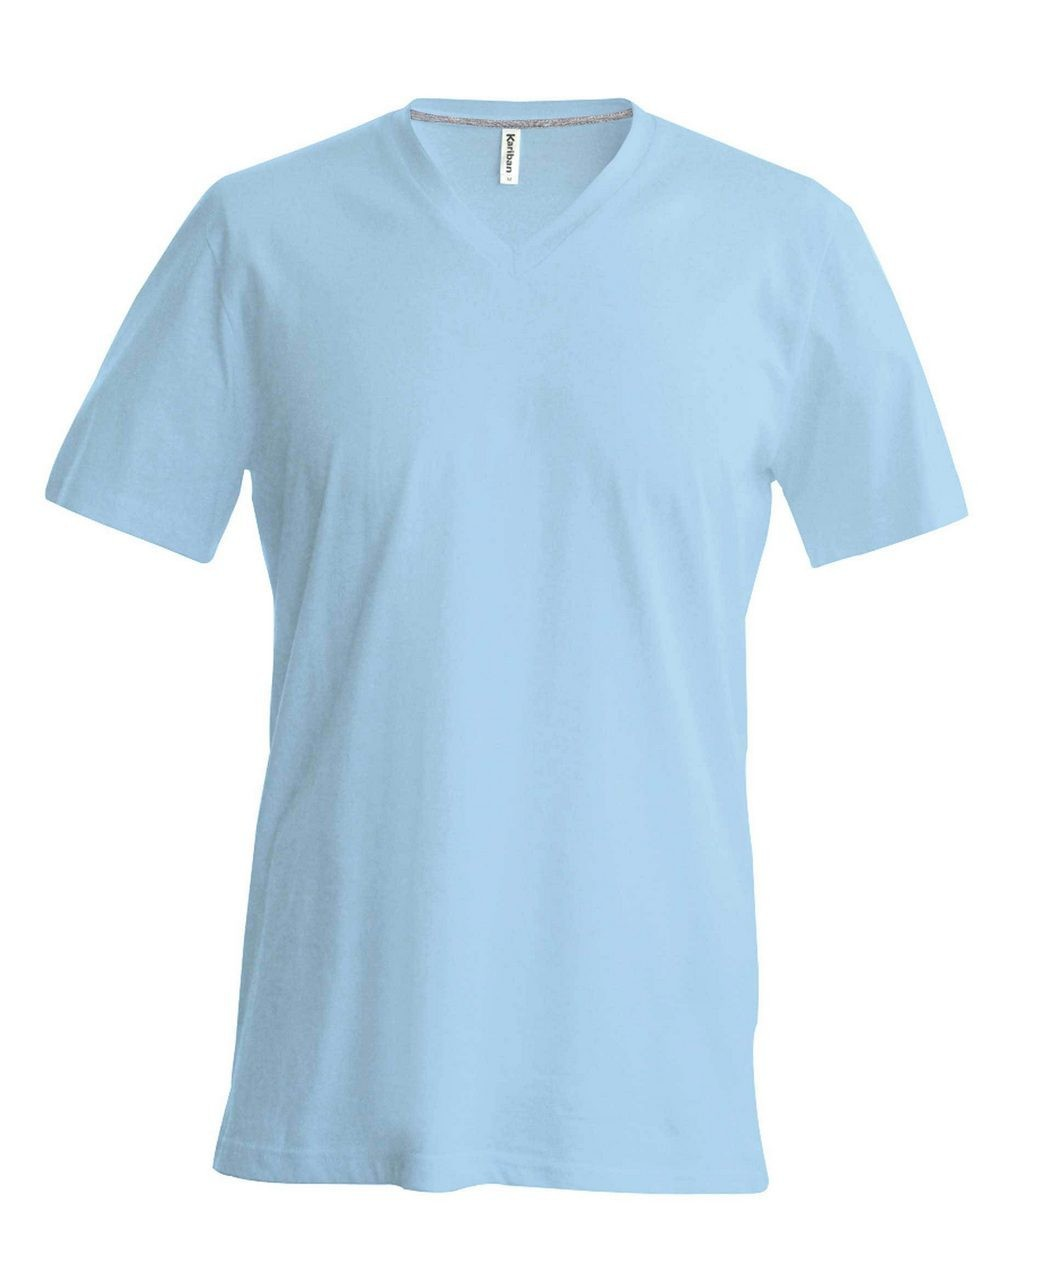 9a1f0b5674 Kariban V-neck T-shirt, Sky Blue, XL (T-shirt, 90-100% cotton ...